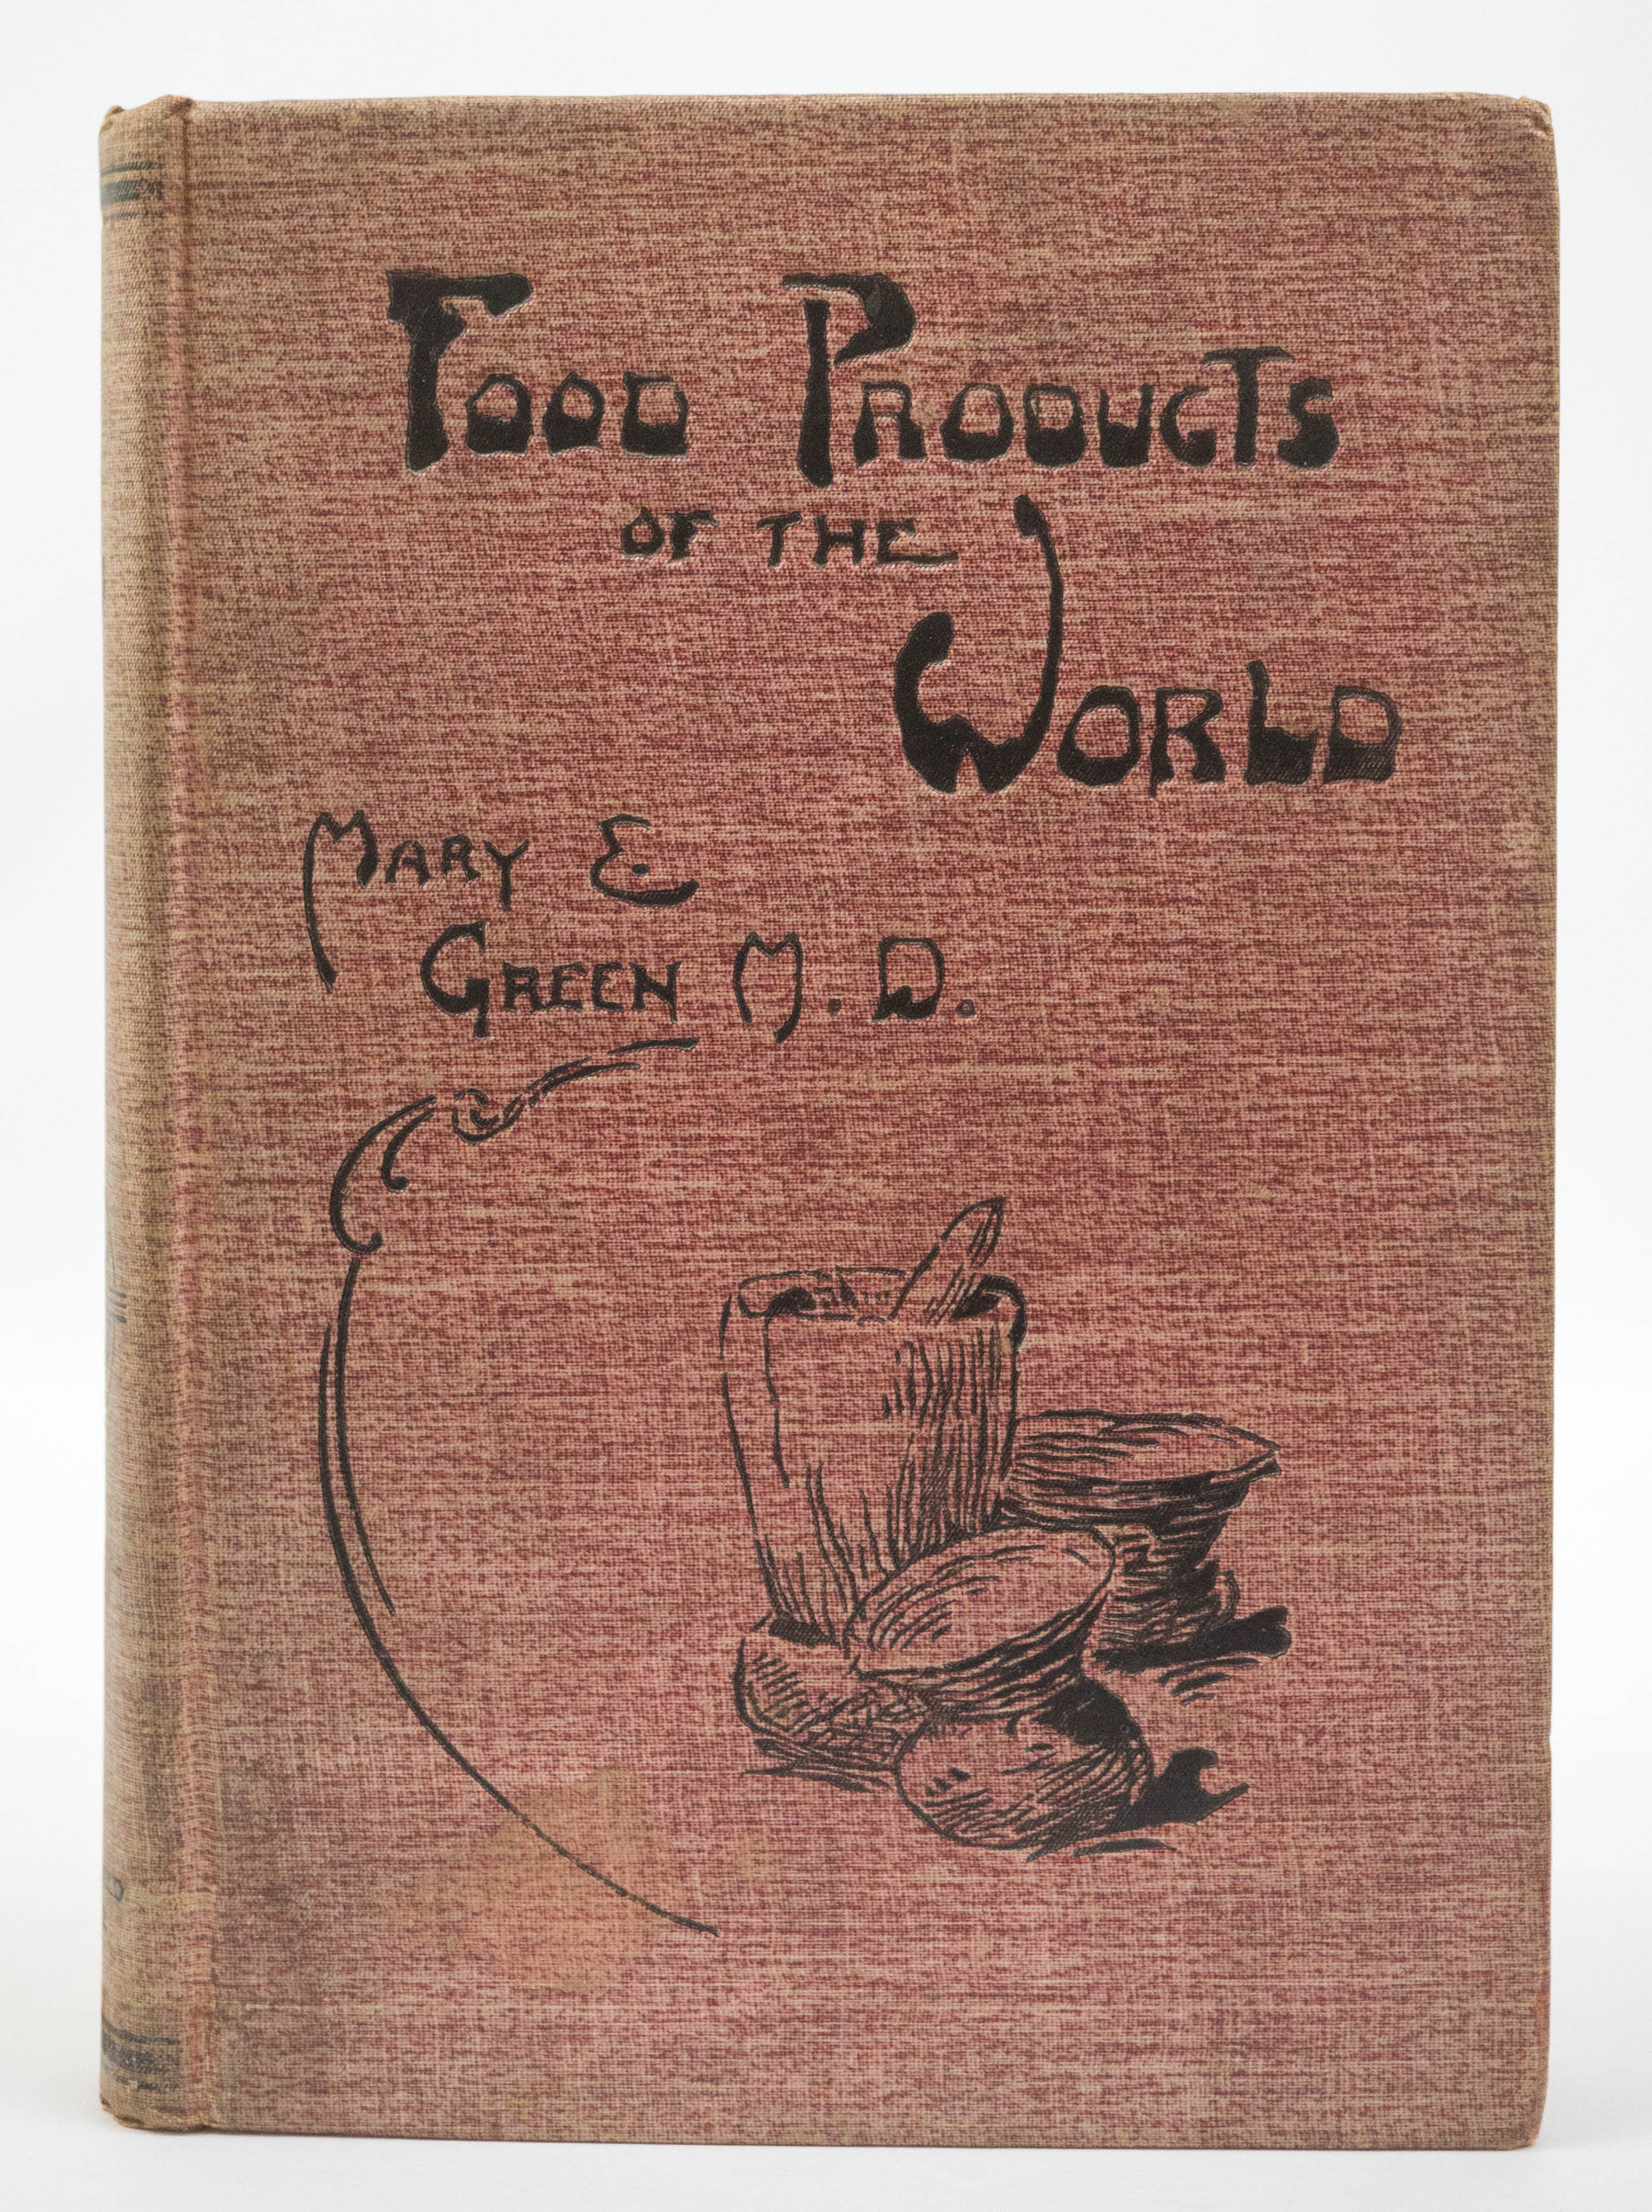 Food Products of the World 1895